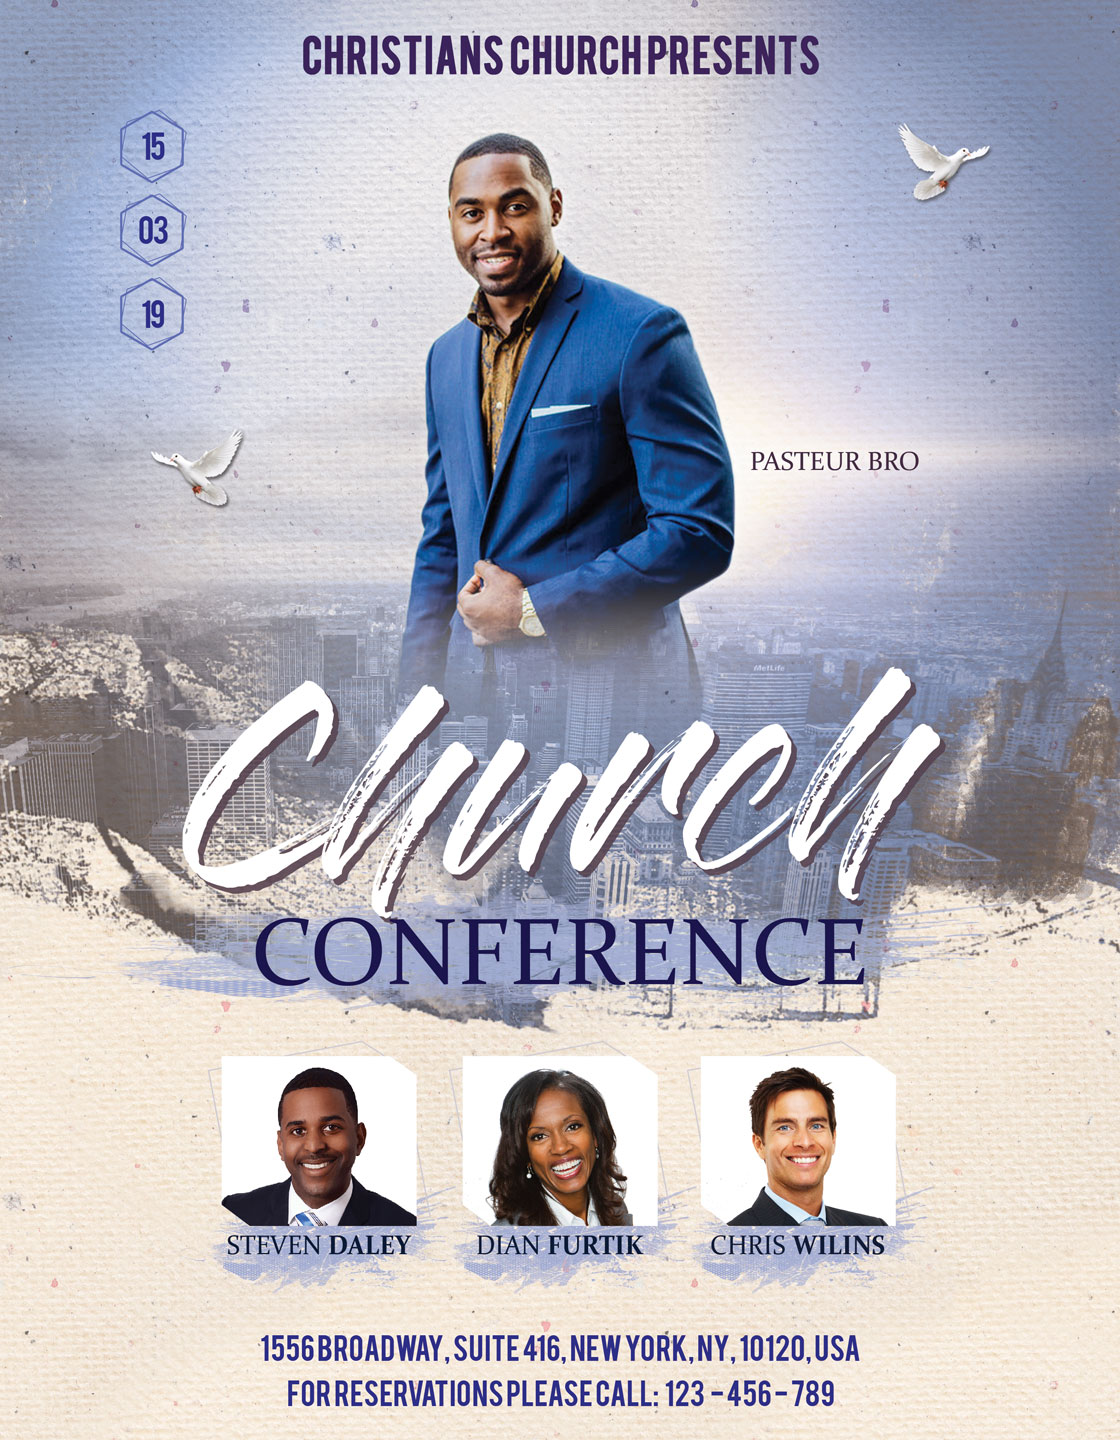 Church Conference Flyer Poster example image 3